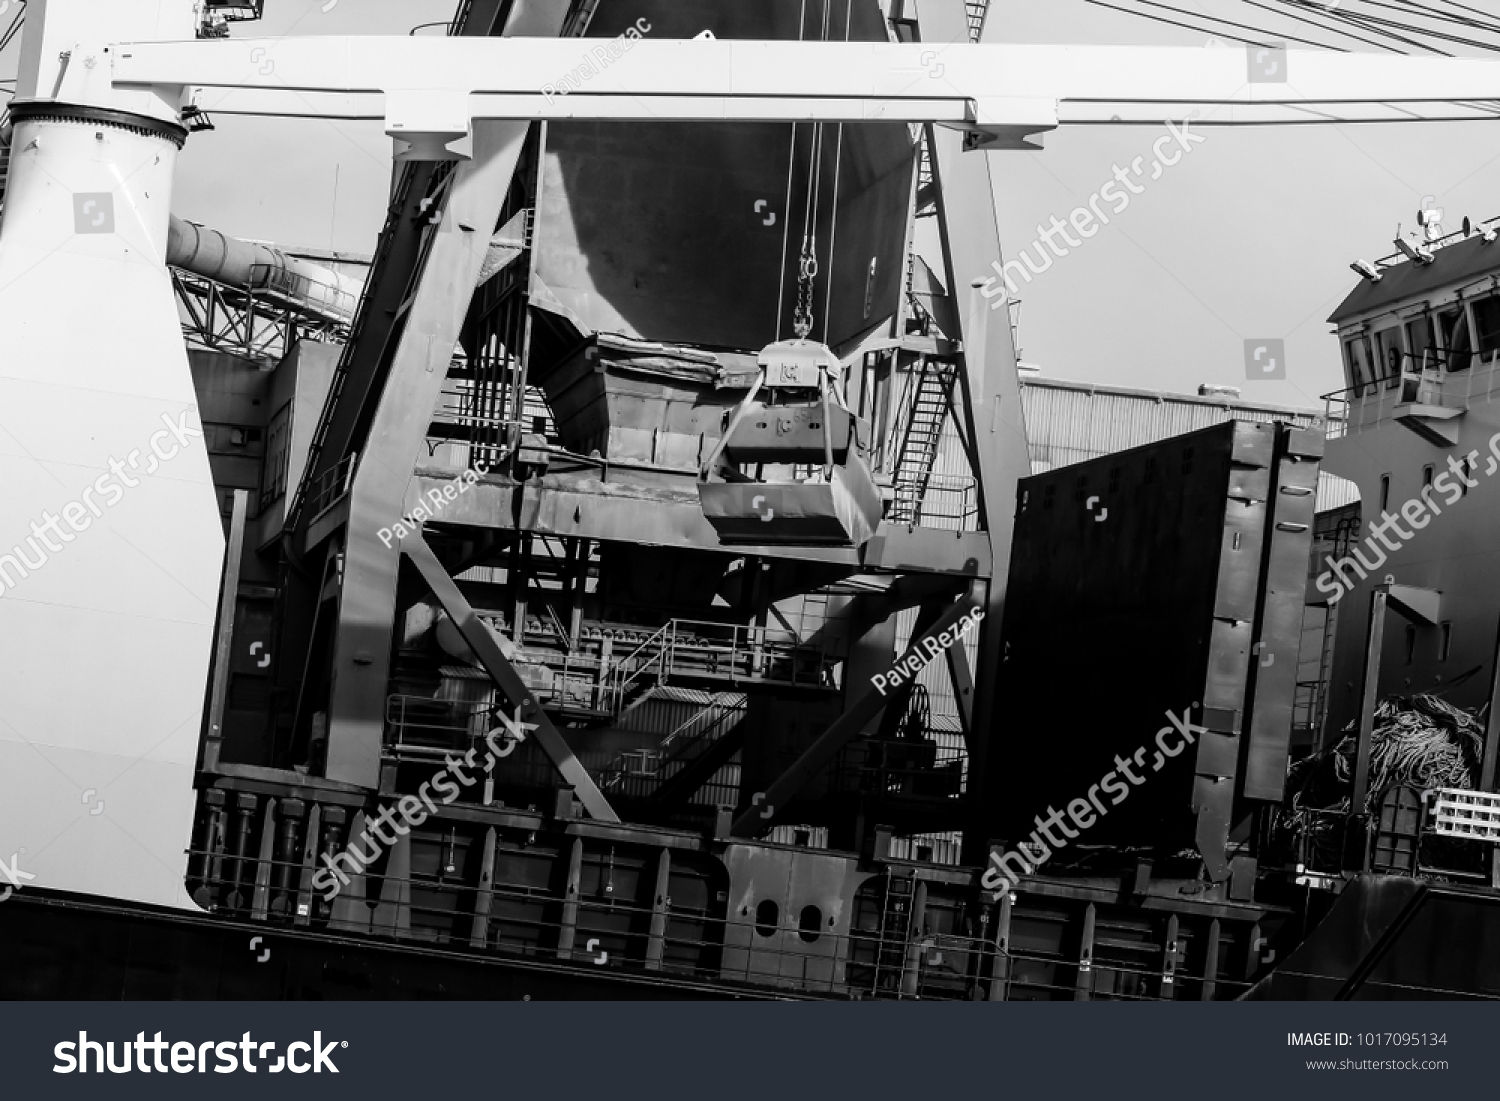 Gdansk shipyard poland retro style black and white cranes old shipyard buildings